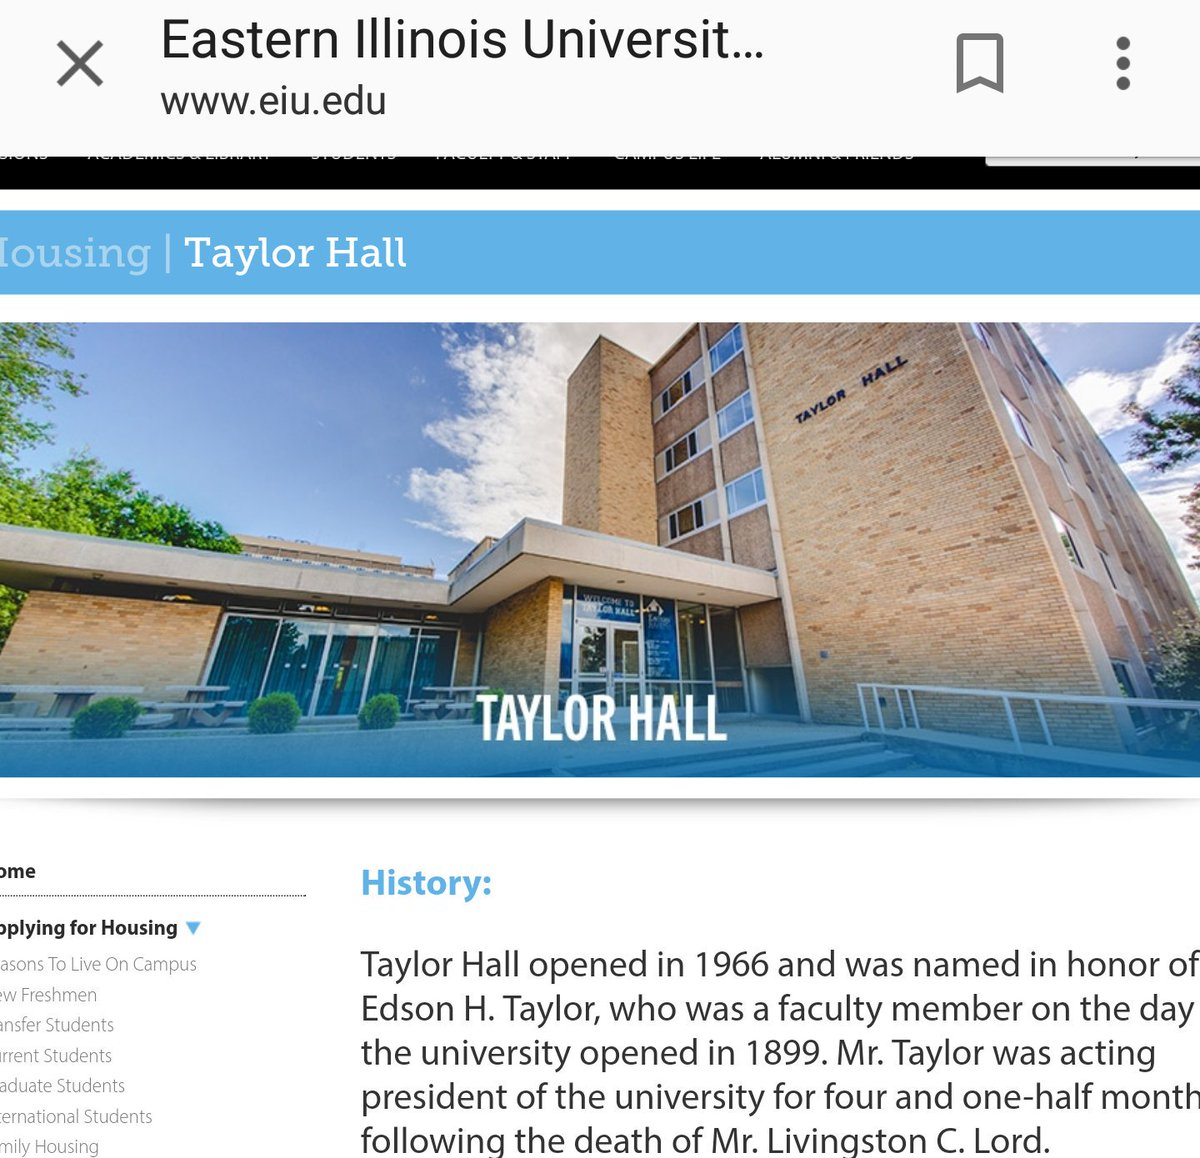 Dion J T Sports On Twitter Saw Taylorhall Was Trending On Twitter Thought Something Happened To My College Dorm Of 3 Years At Eiu I Was Wrong It Was About A